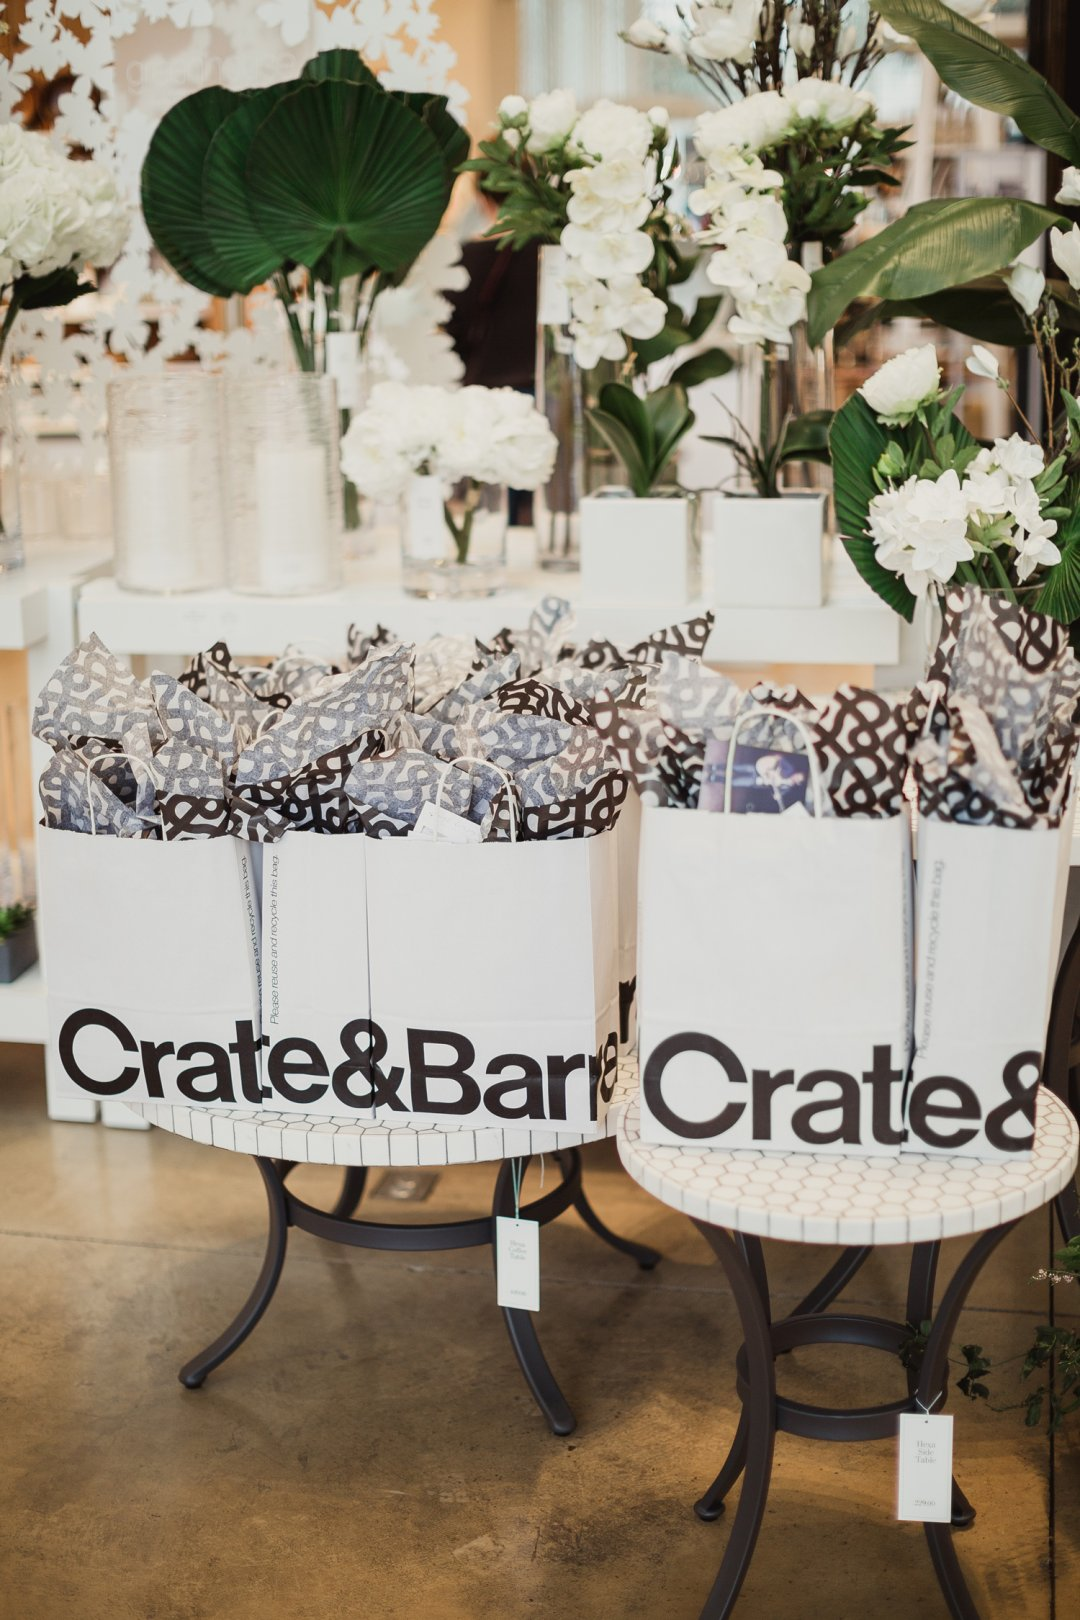 Crate and Barrel gift bags for couples who attended the event